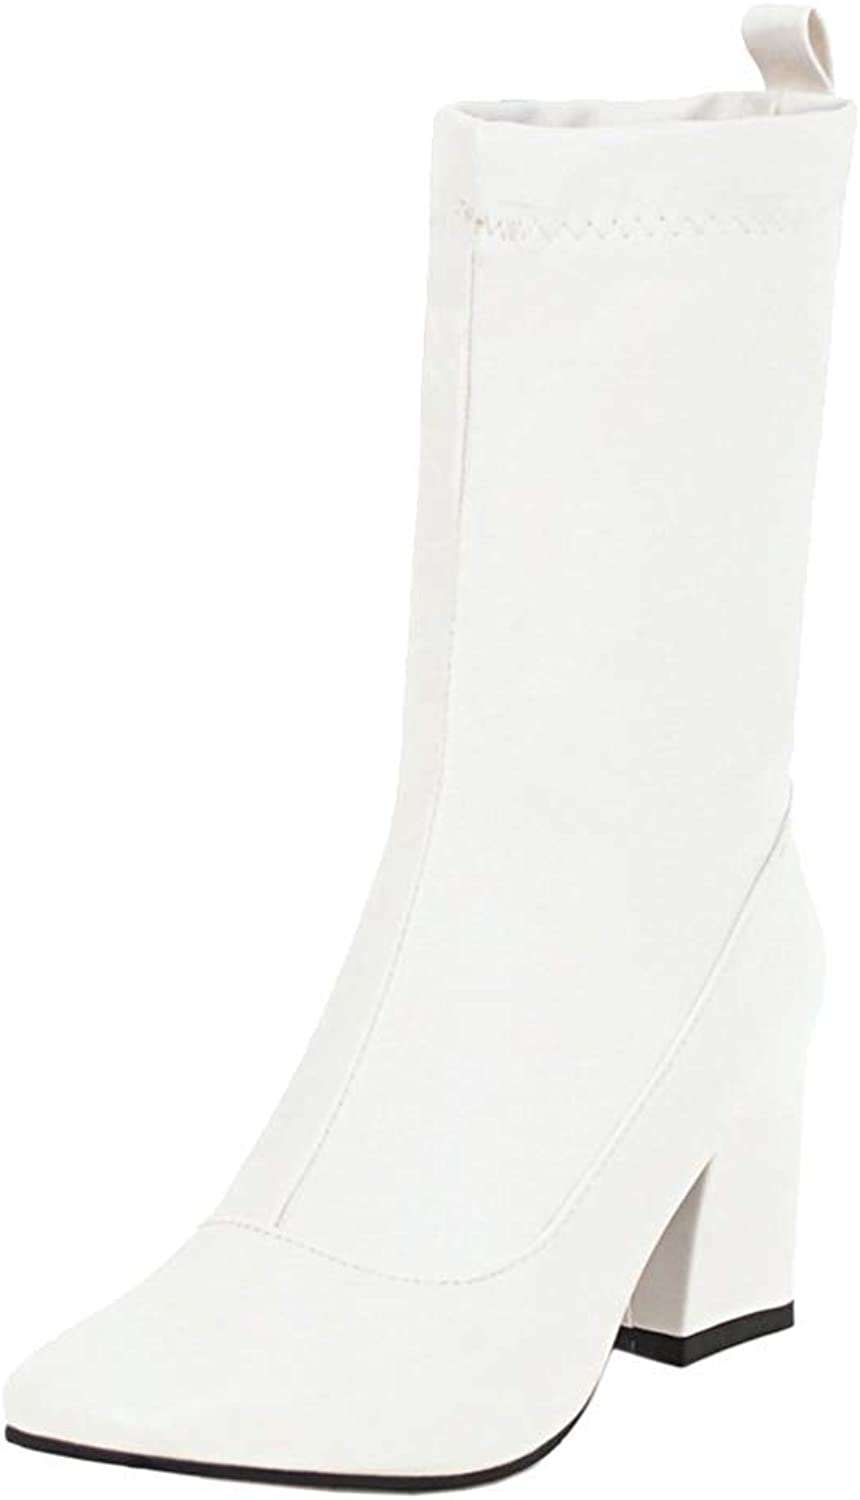 Unm Women's Thigh High Square Toe Autumn Winter Short Boots